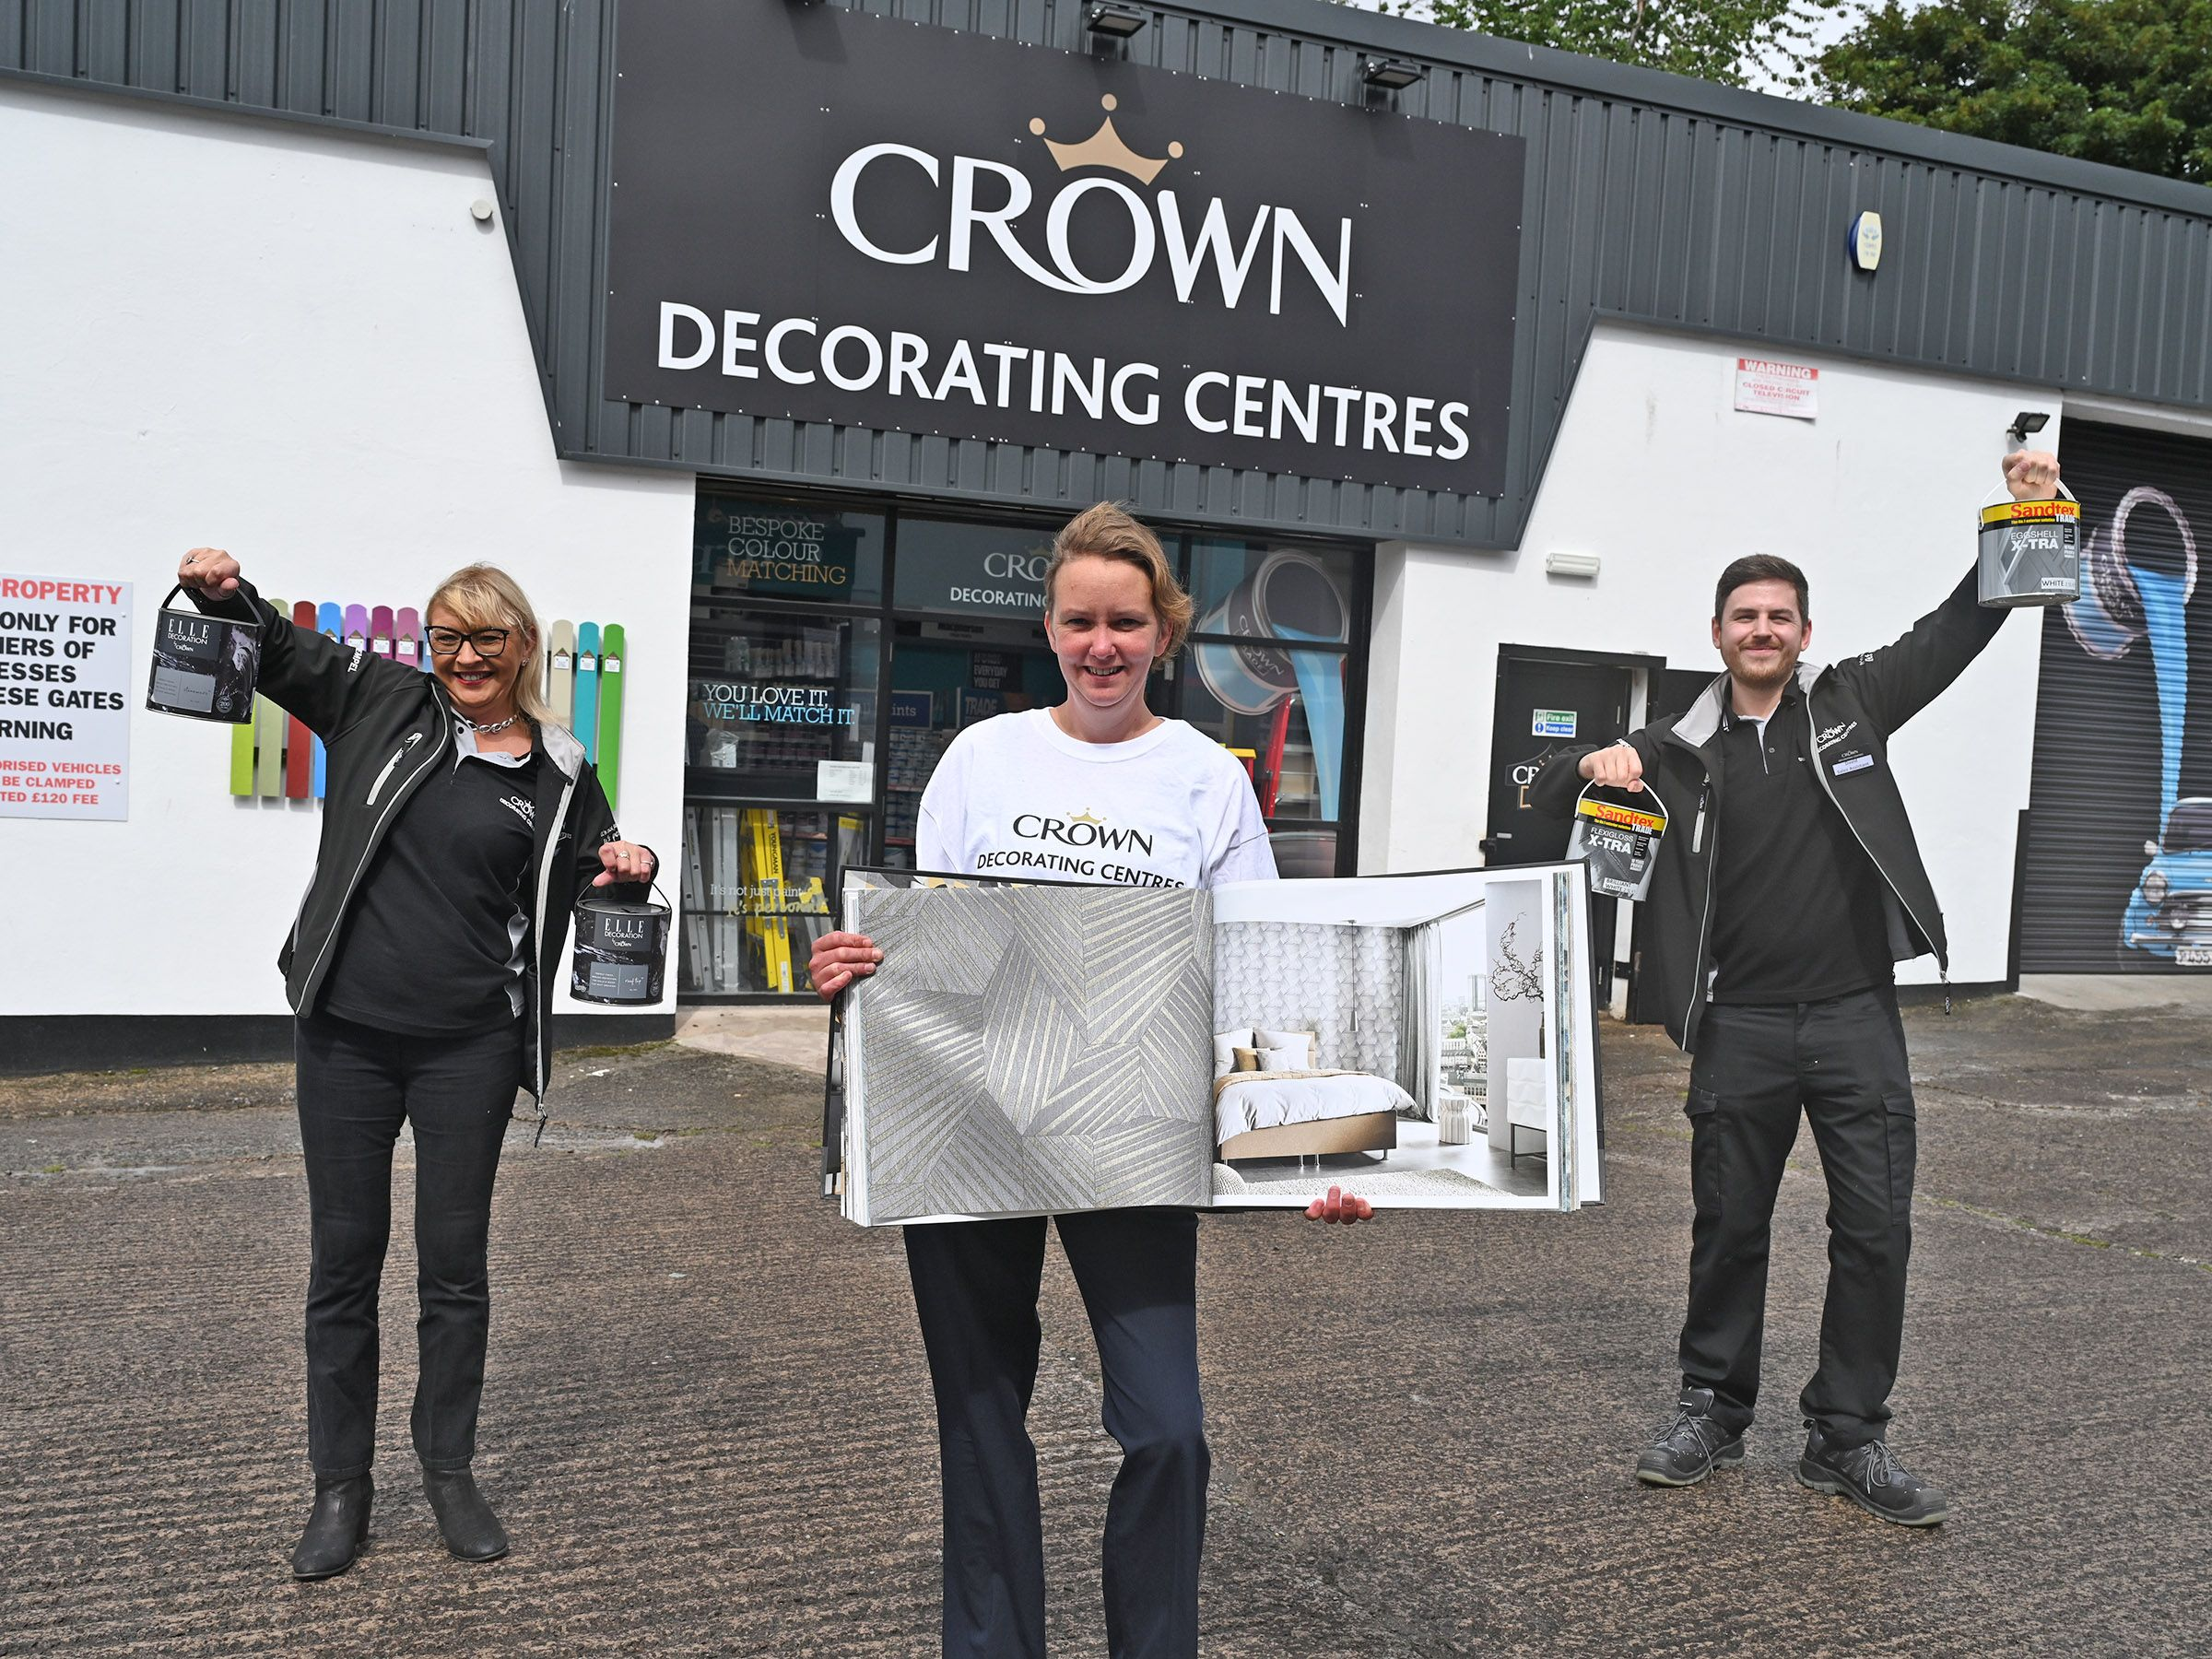 NEW STORE: Cathy McQuaid (Branch Manager), Valerie Parke (Regional Operations Manager) and Dave Marron